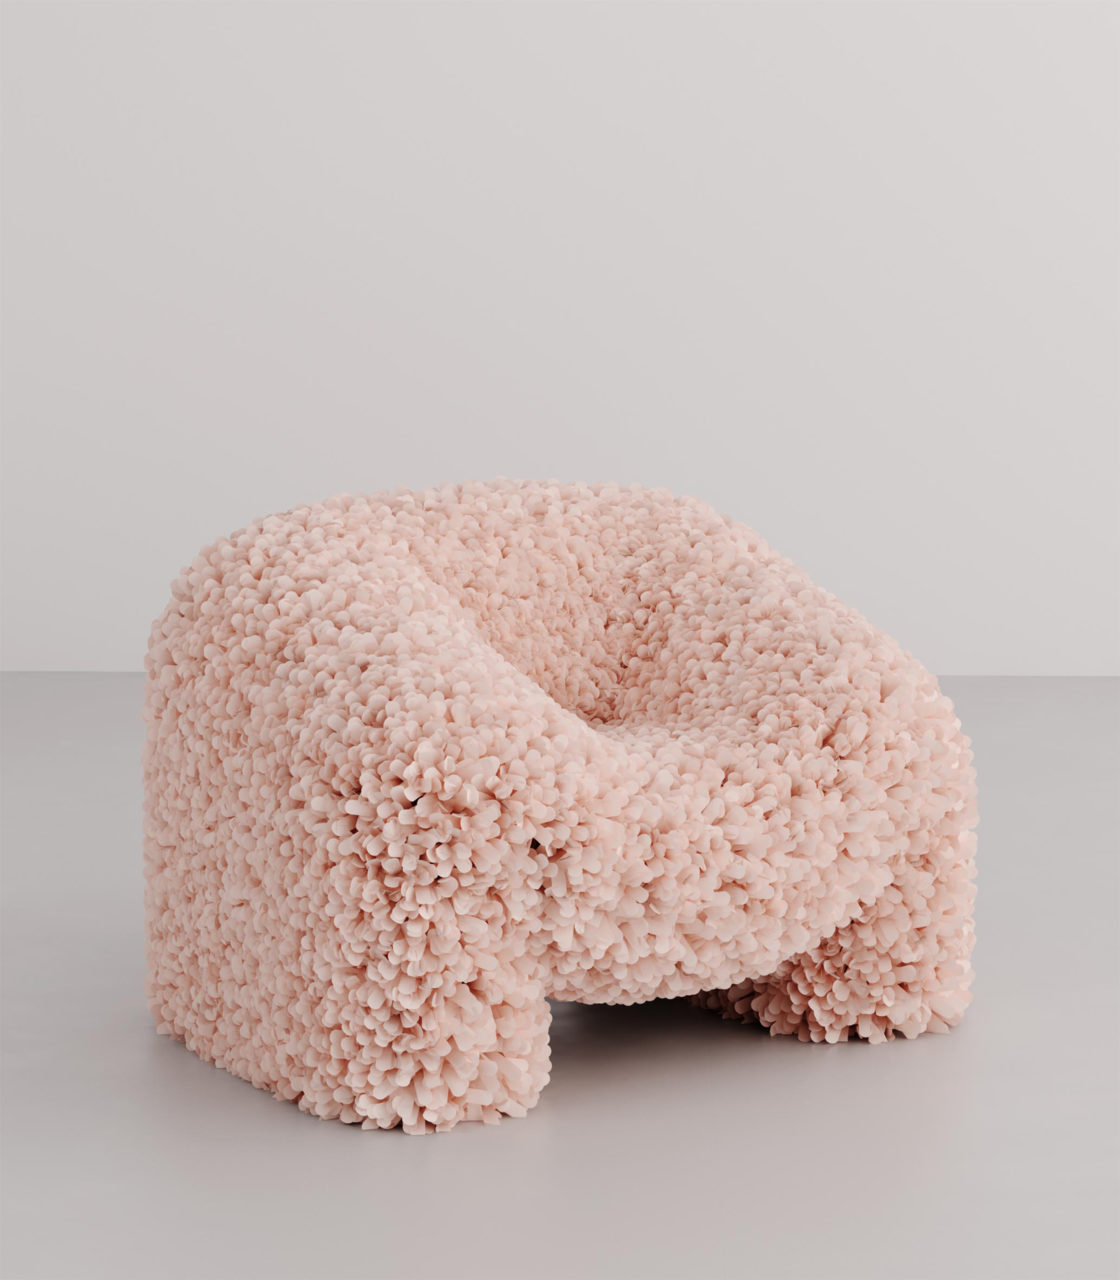 a pink, organic-shaped armchair upholstered in a loose weave textile